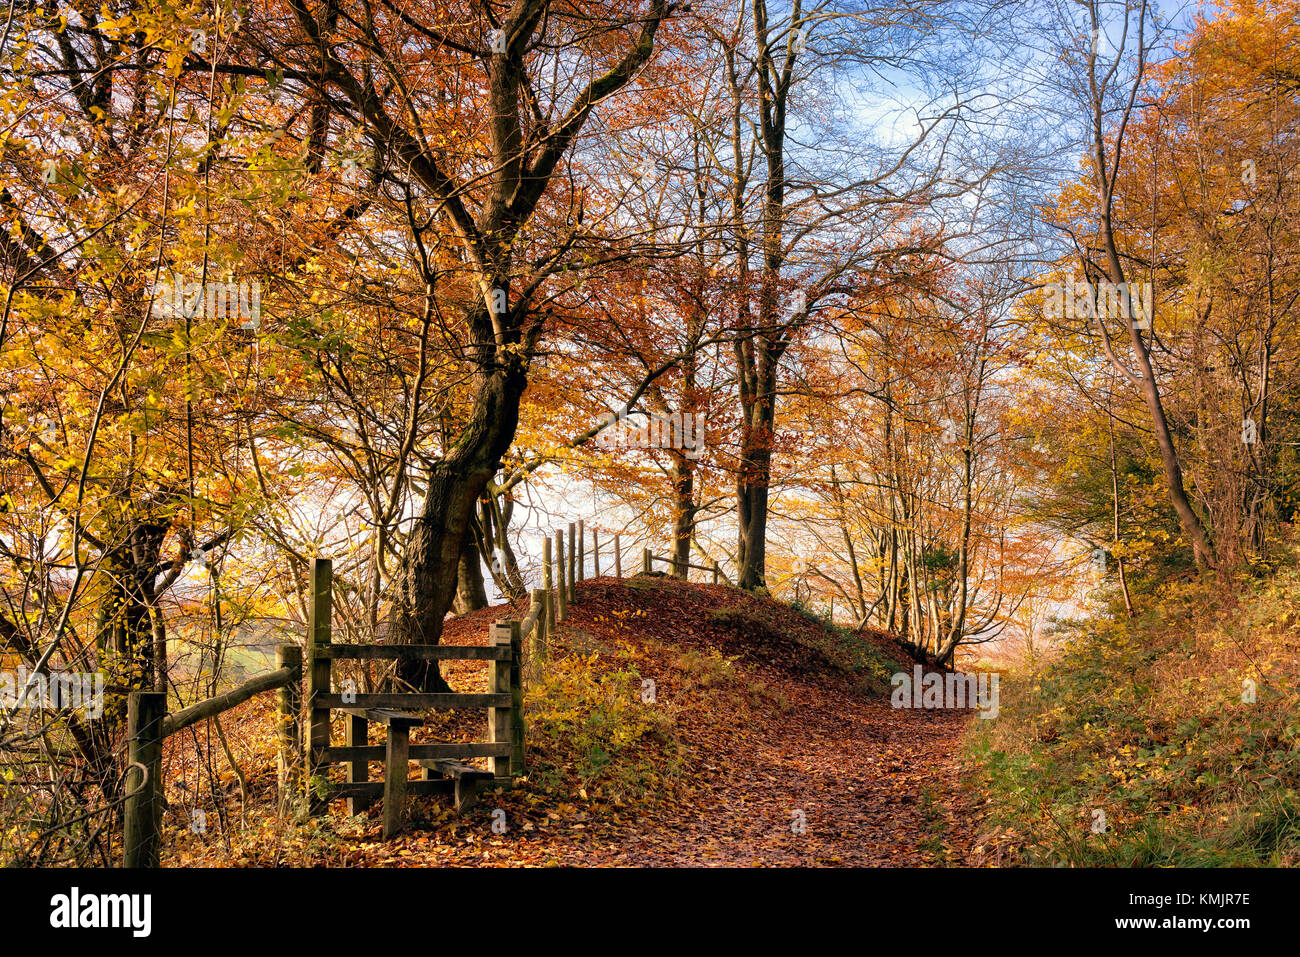 Autumn at Pulpit Wood, Chilterns AONB, Buckinghamshire, England, UK - Stock Image